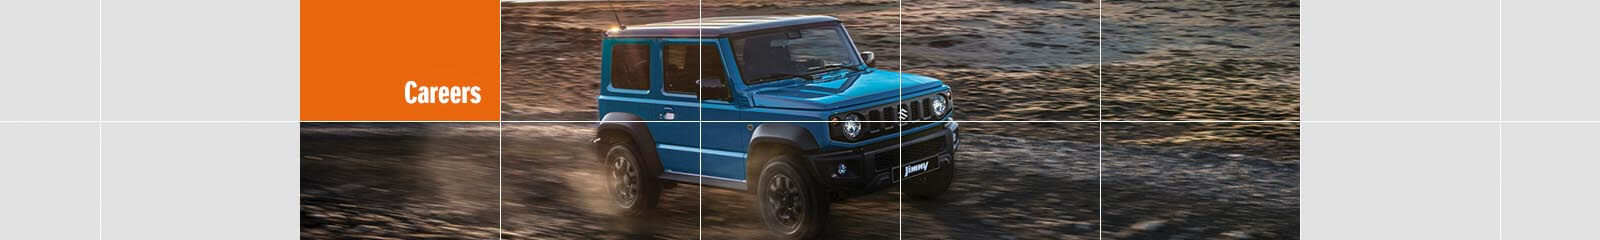 Suzuki Jimny driving on sand